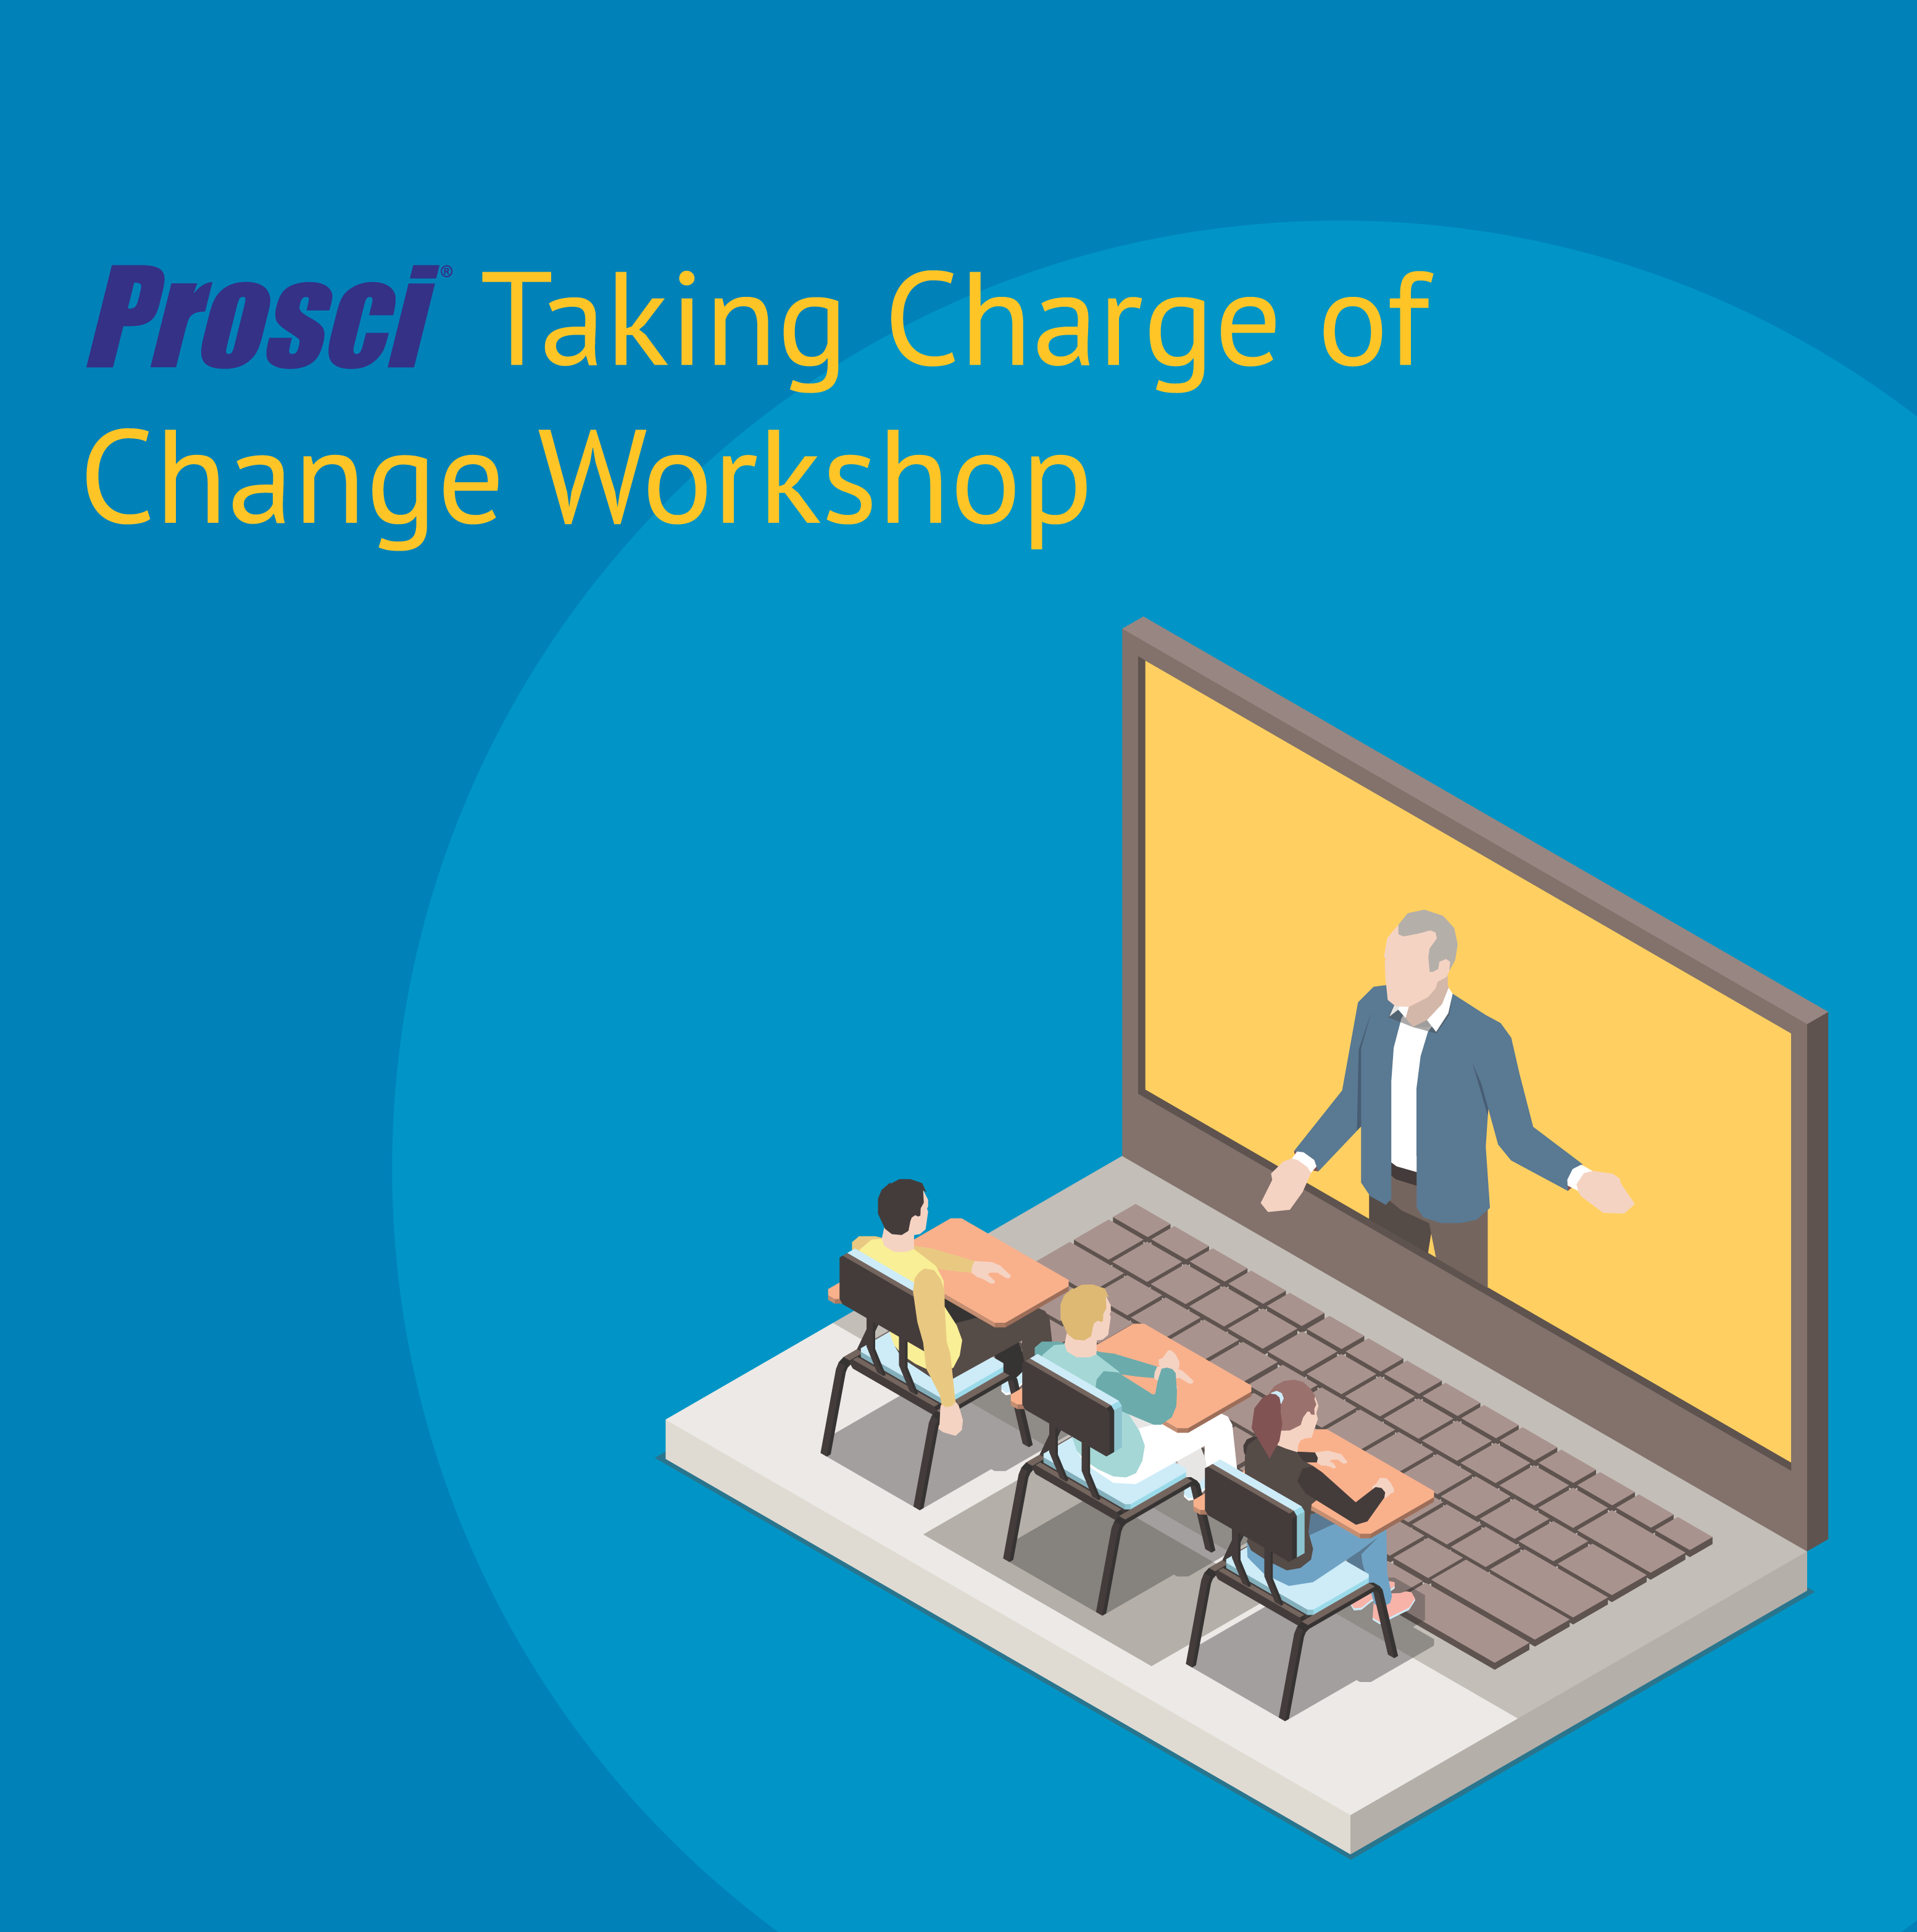 TAKING-CHARGE-OF-CHANGE-WORKSHOP